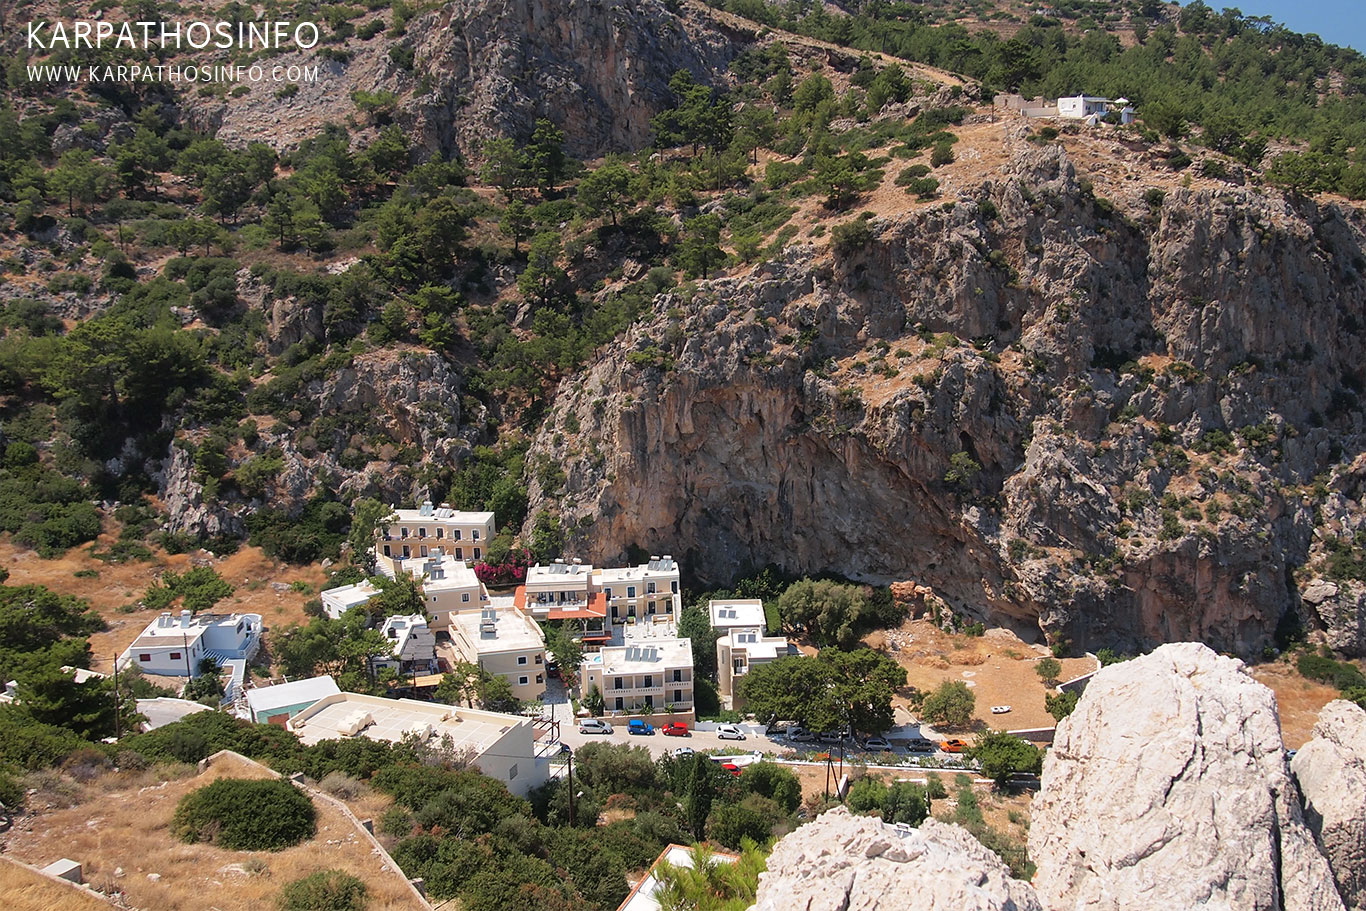 Kyra Panagia village, Karpathos, Greece